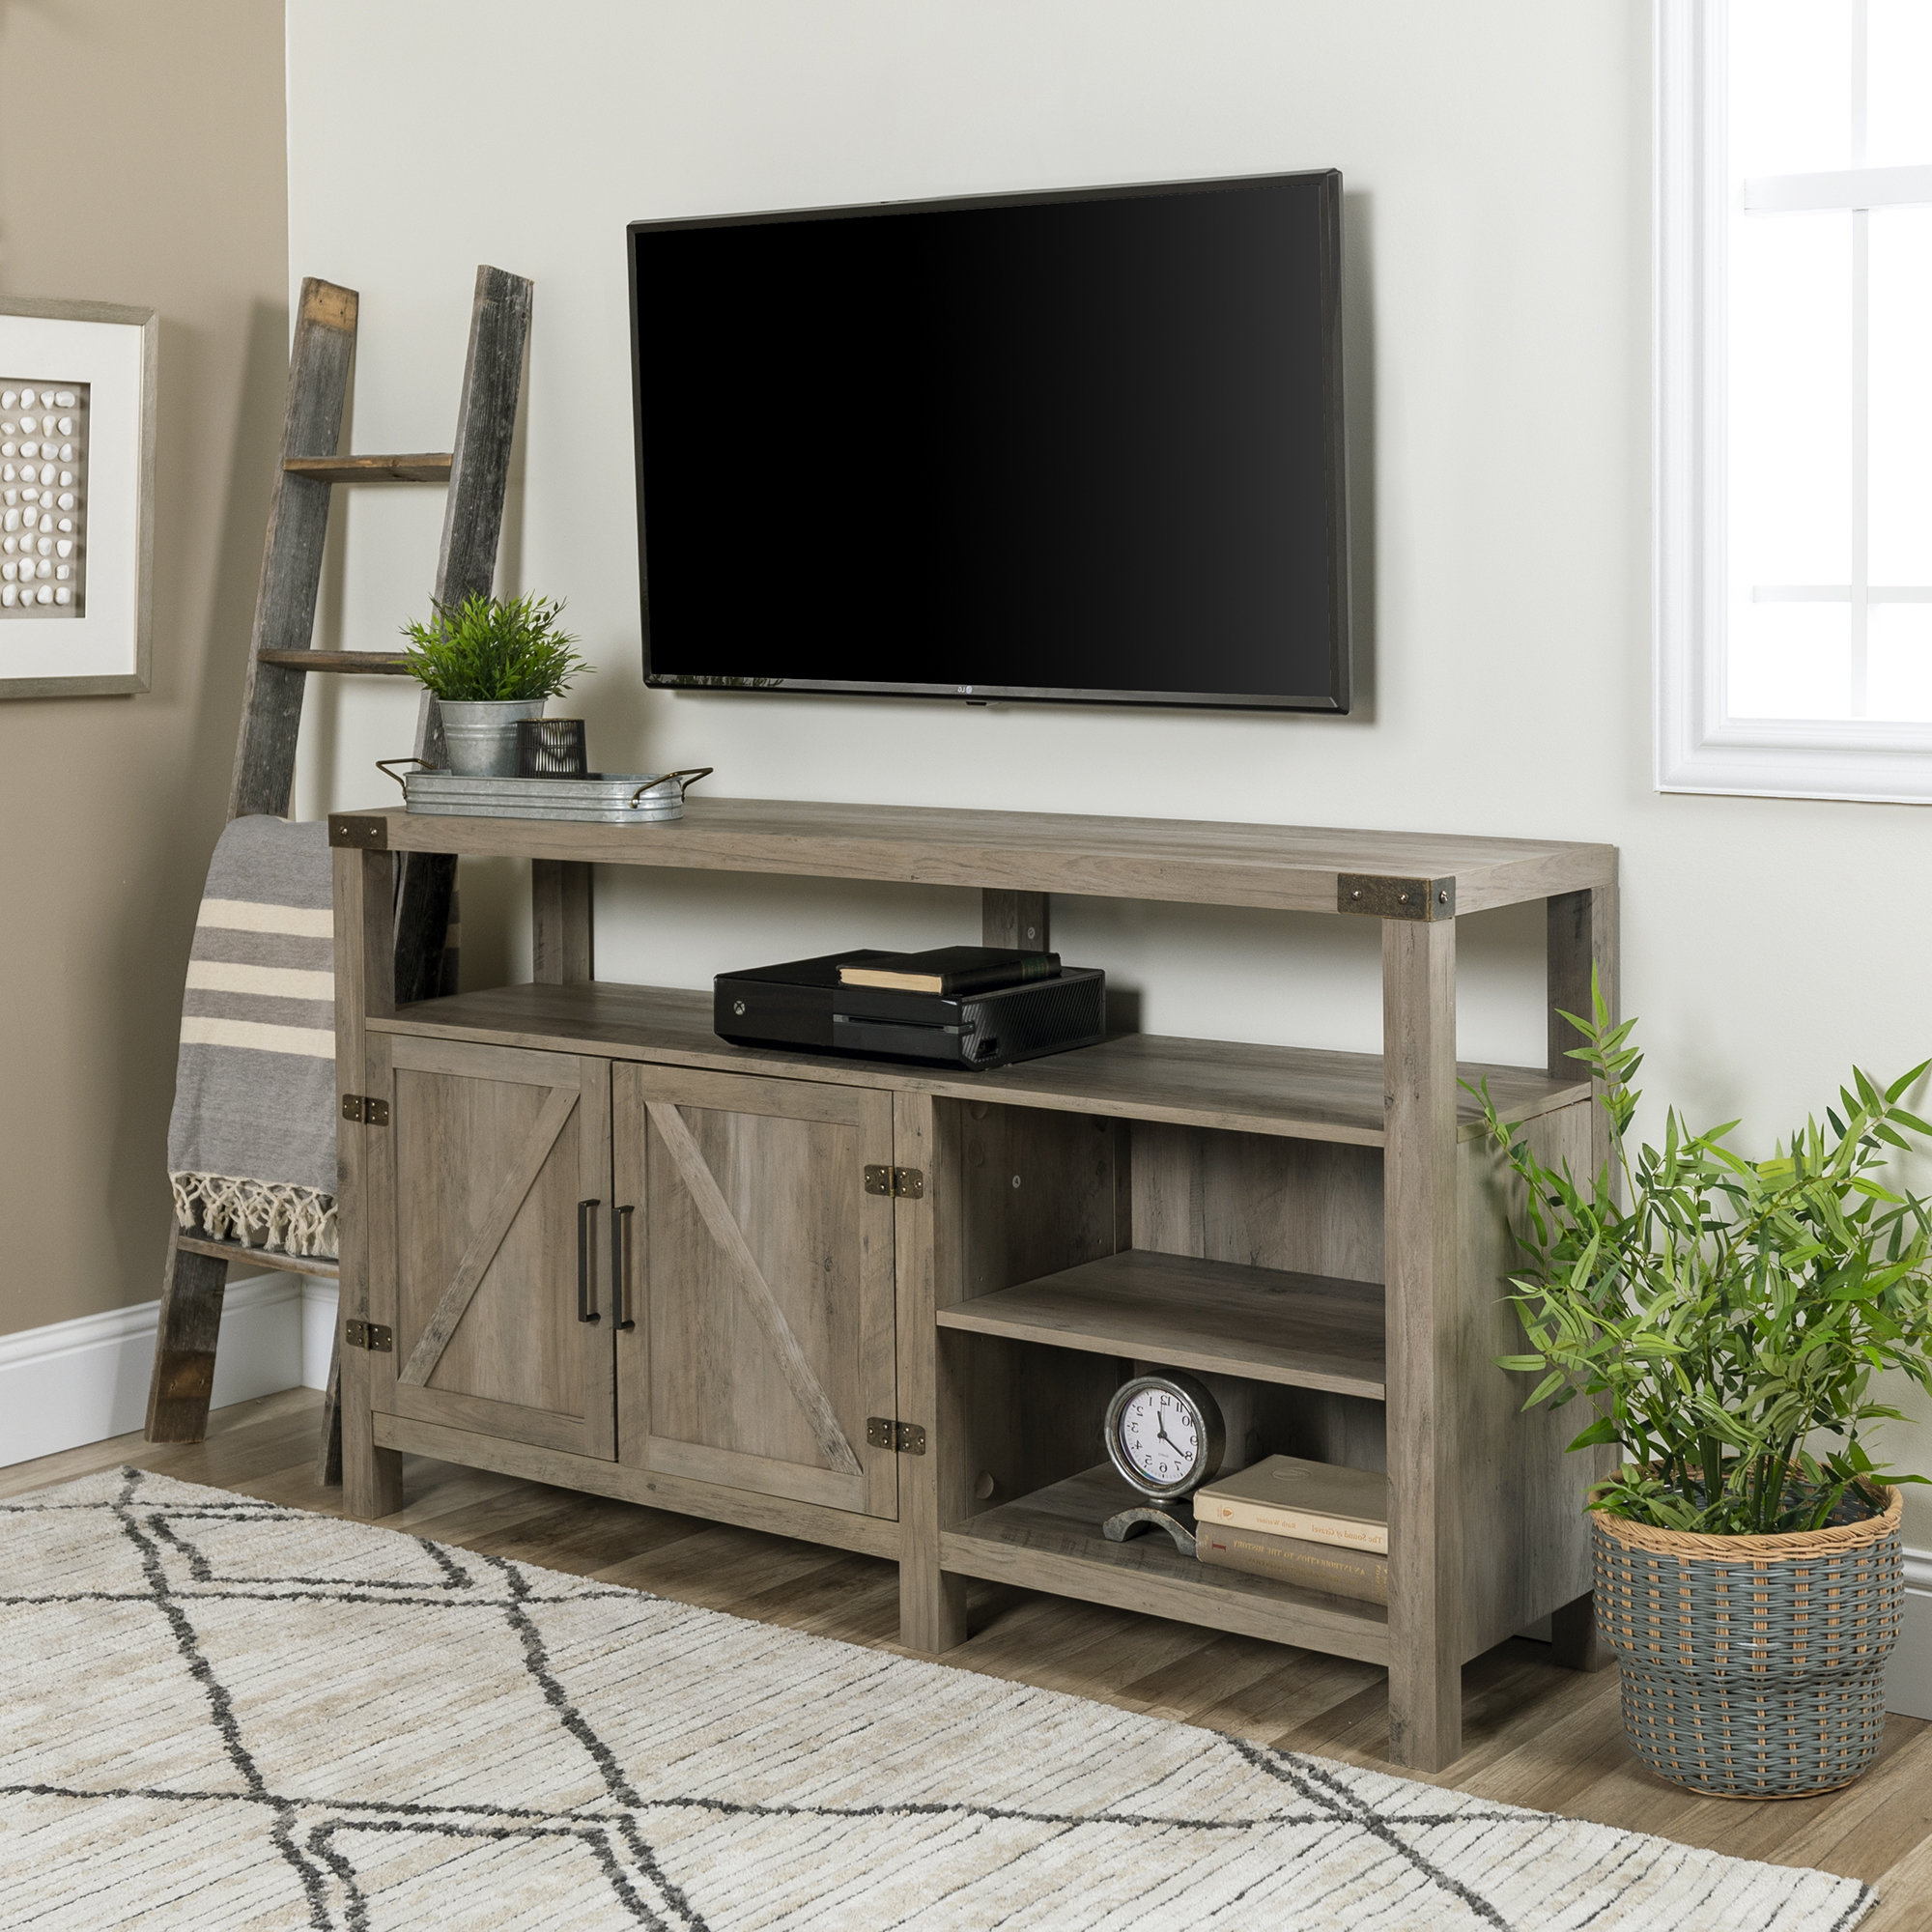 Tall Tv Stands You'll Love | Wayfair Pertaining To Canyon 54 Inch Tv Stands (View 17 of 20)